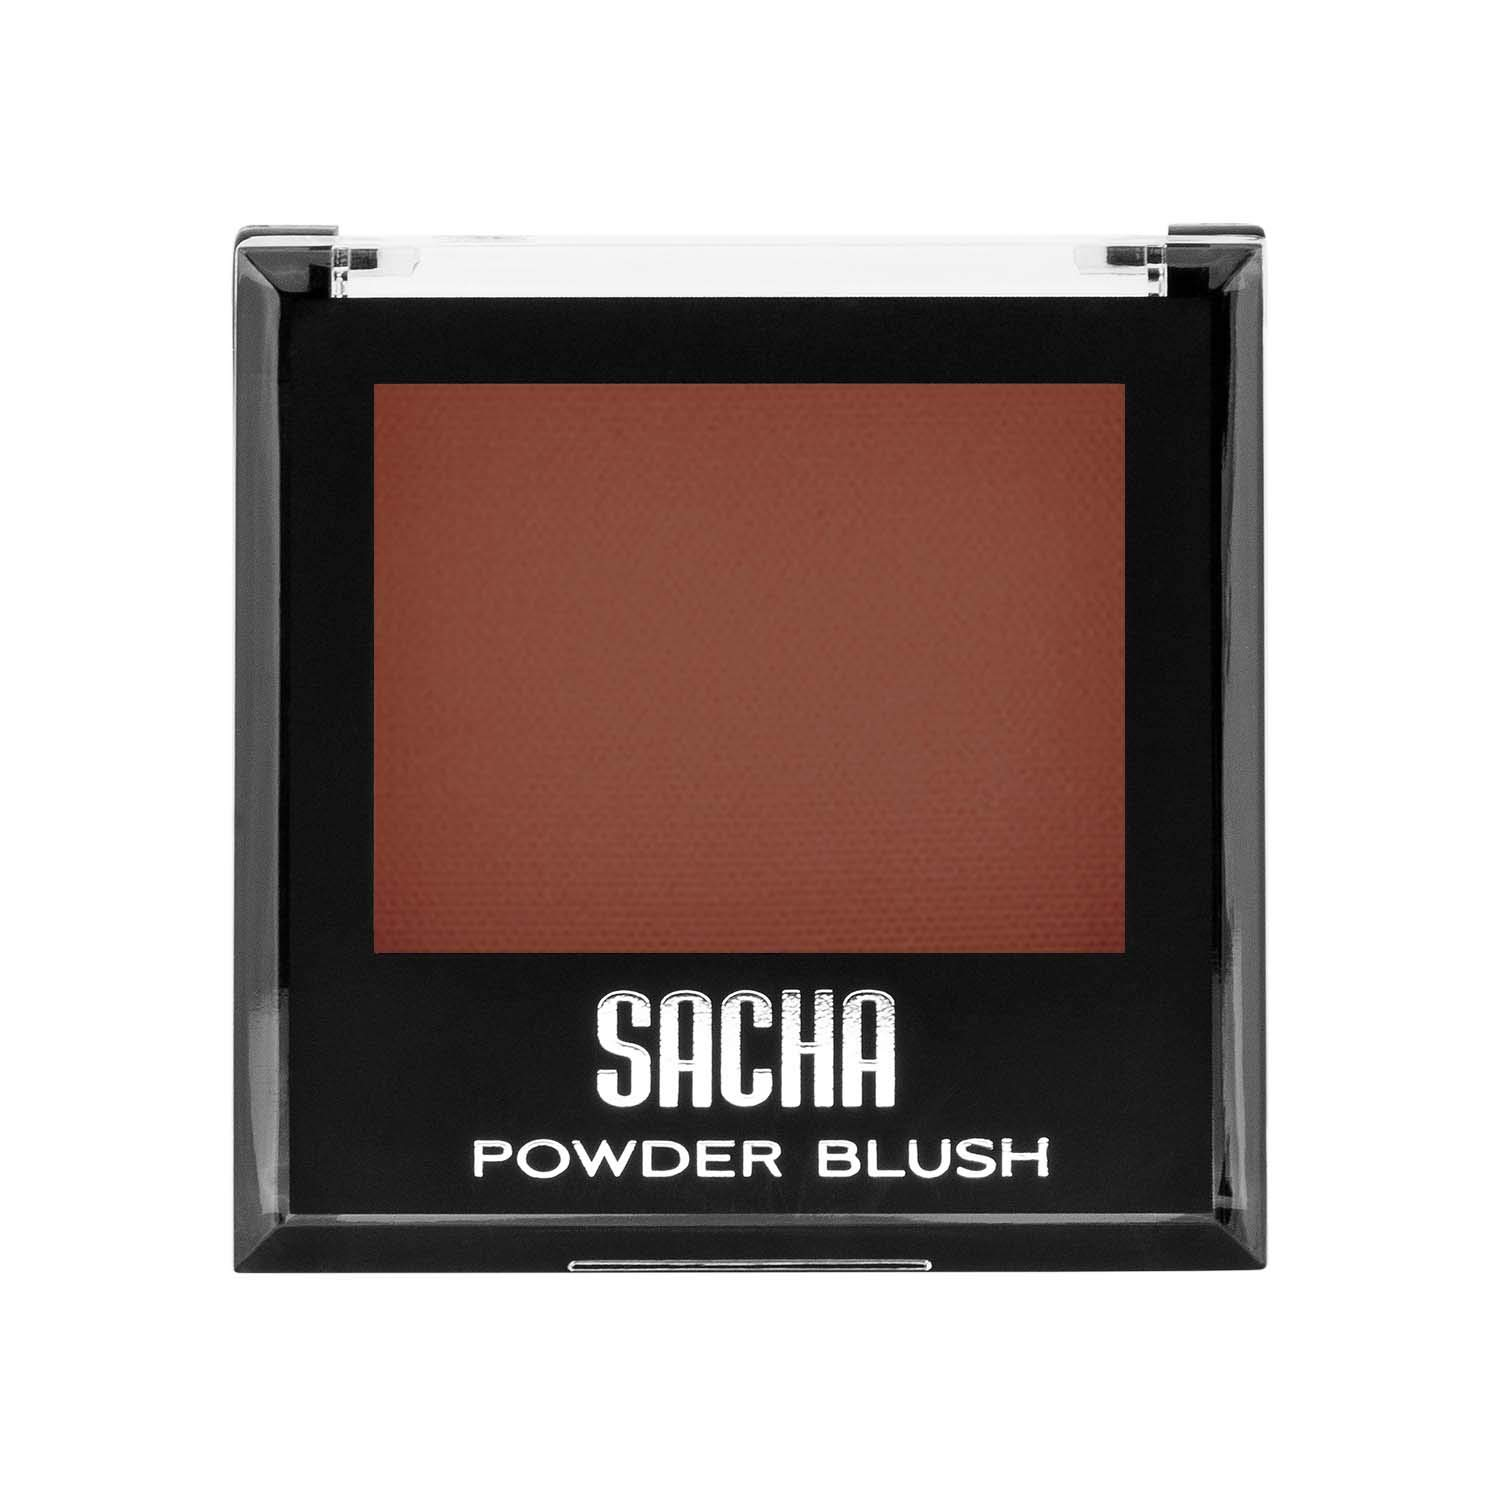 Blush by Sacha Cosmetics, Best Highlighter Makeup Blusher to Sculpt Face & Highlight Cheeks, 14 shades, 0.27 oz, Santa Fe